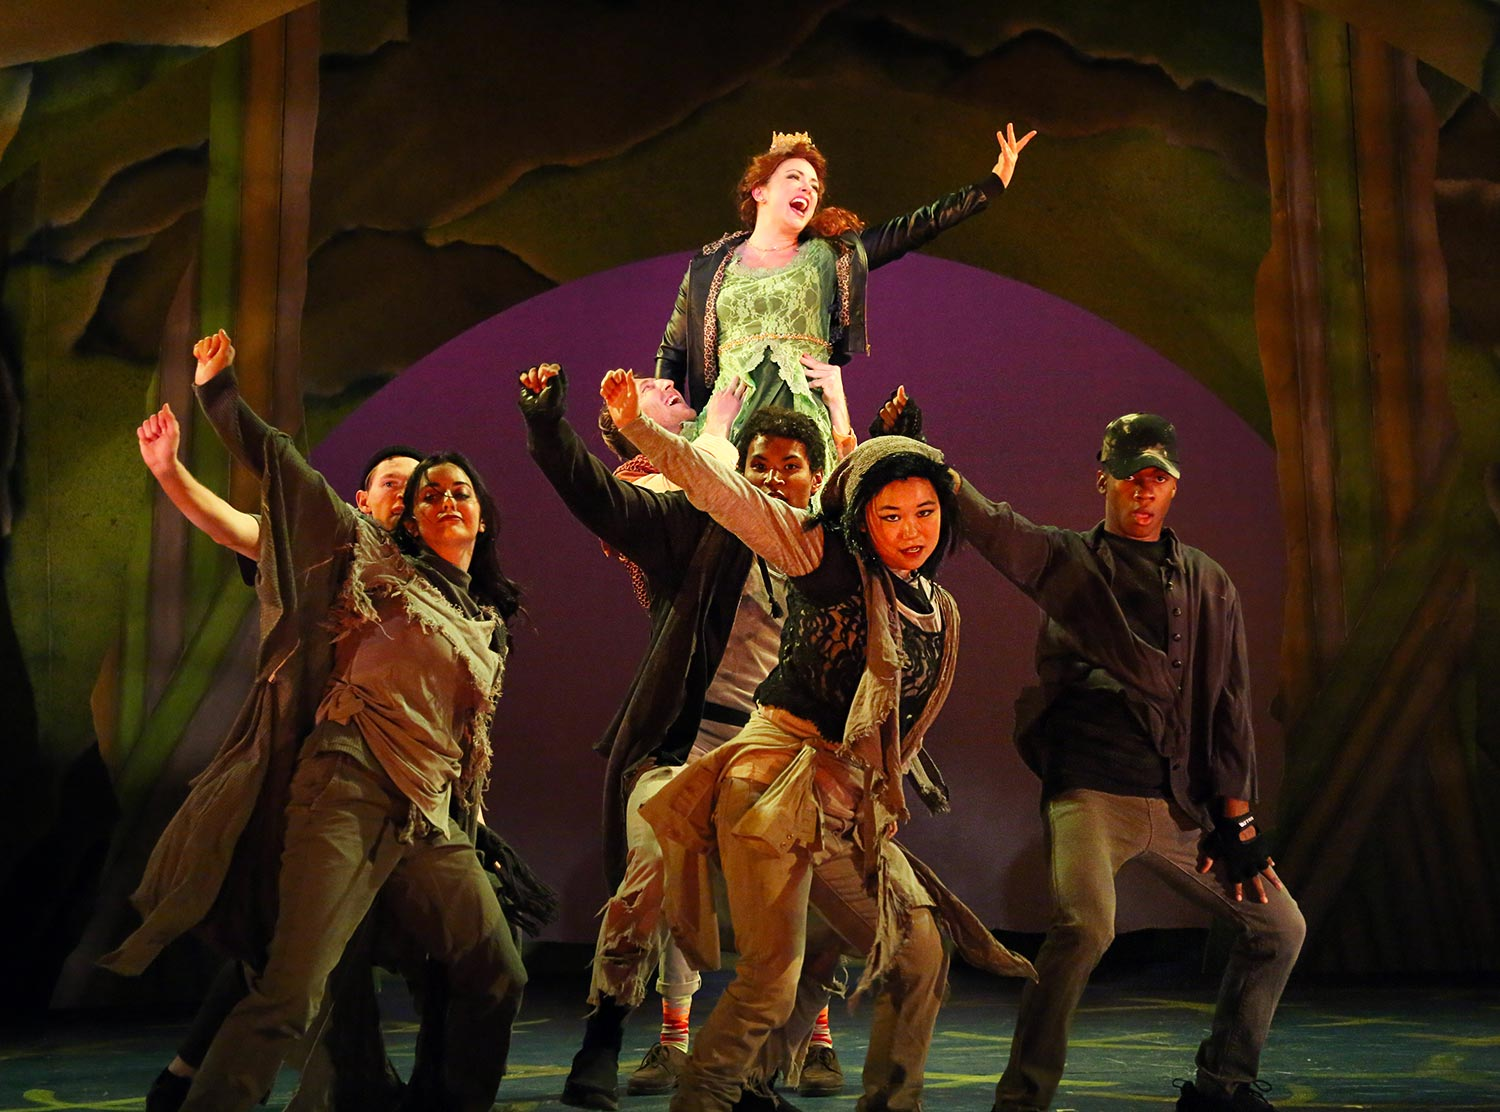 Actors do a choreographed dance with Princess Fiona on top of a human pyramid